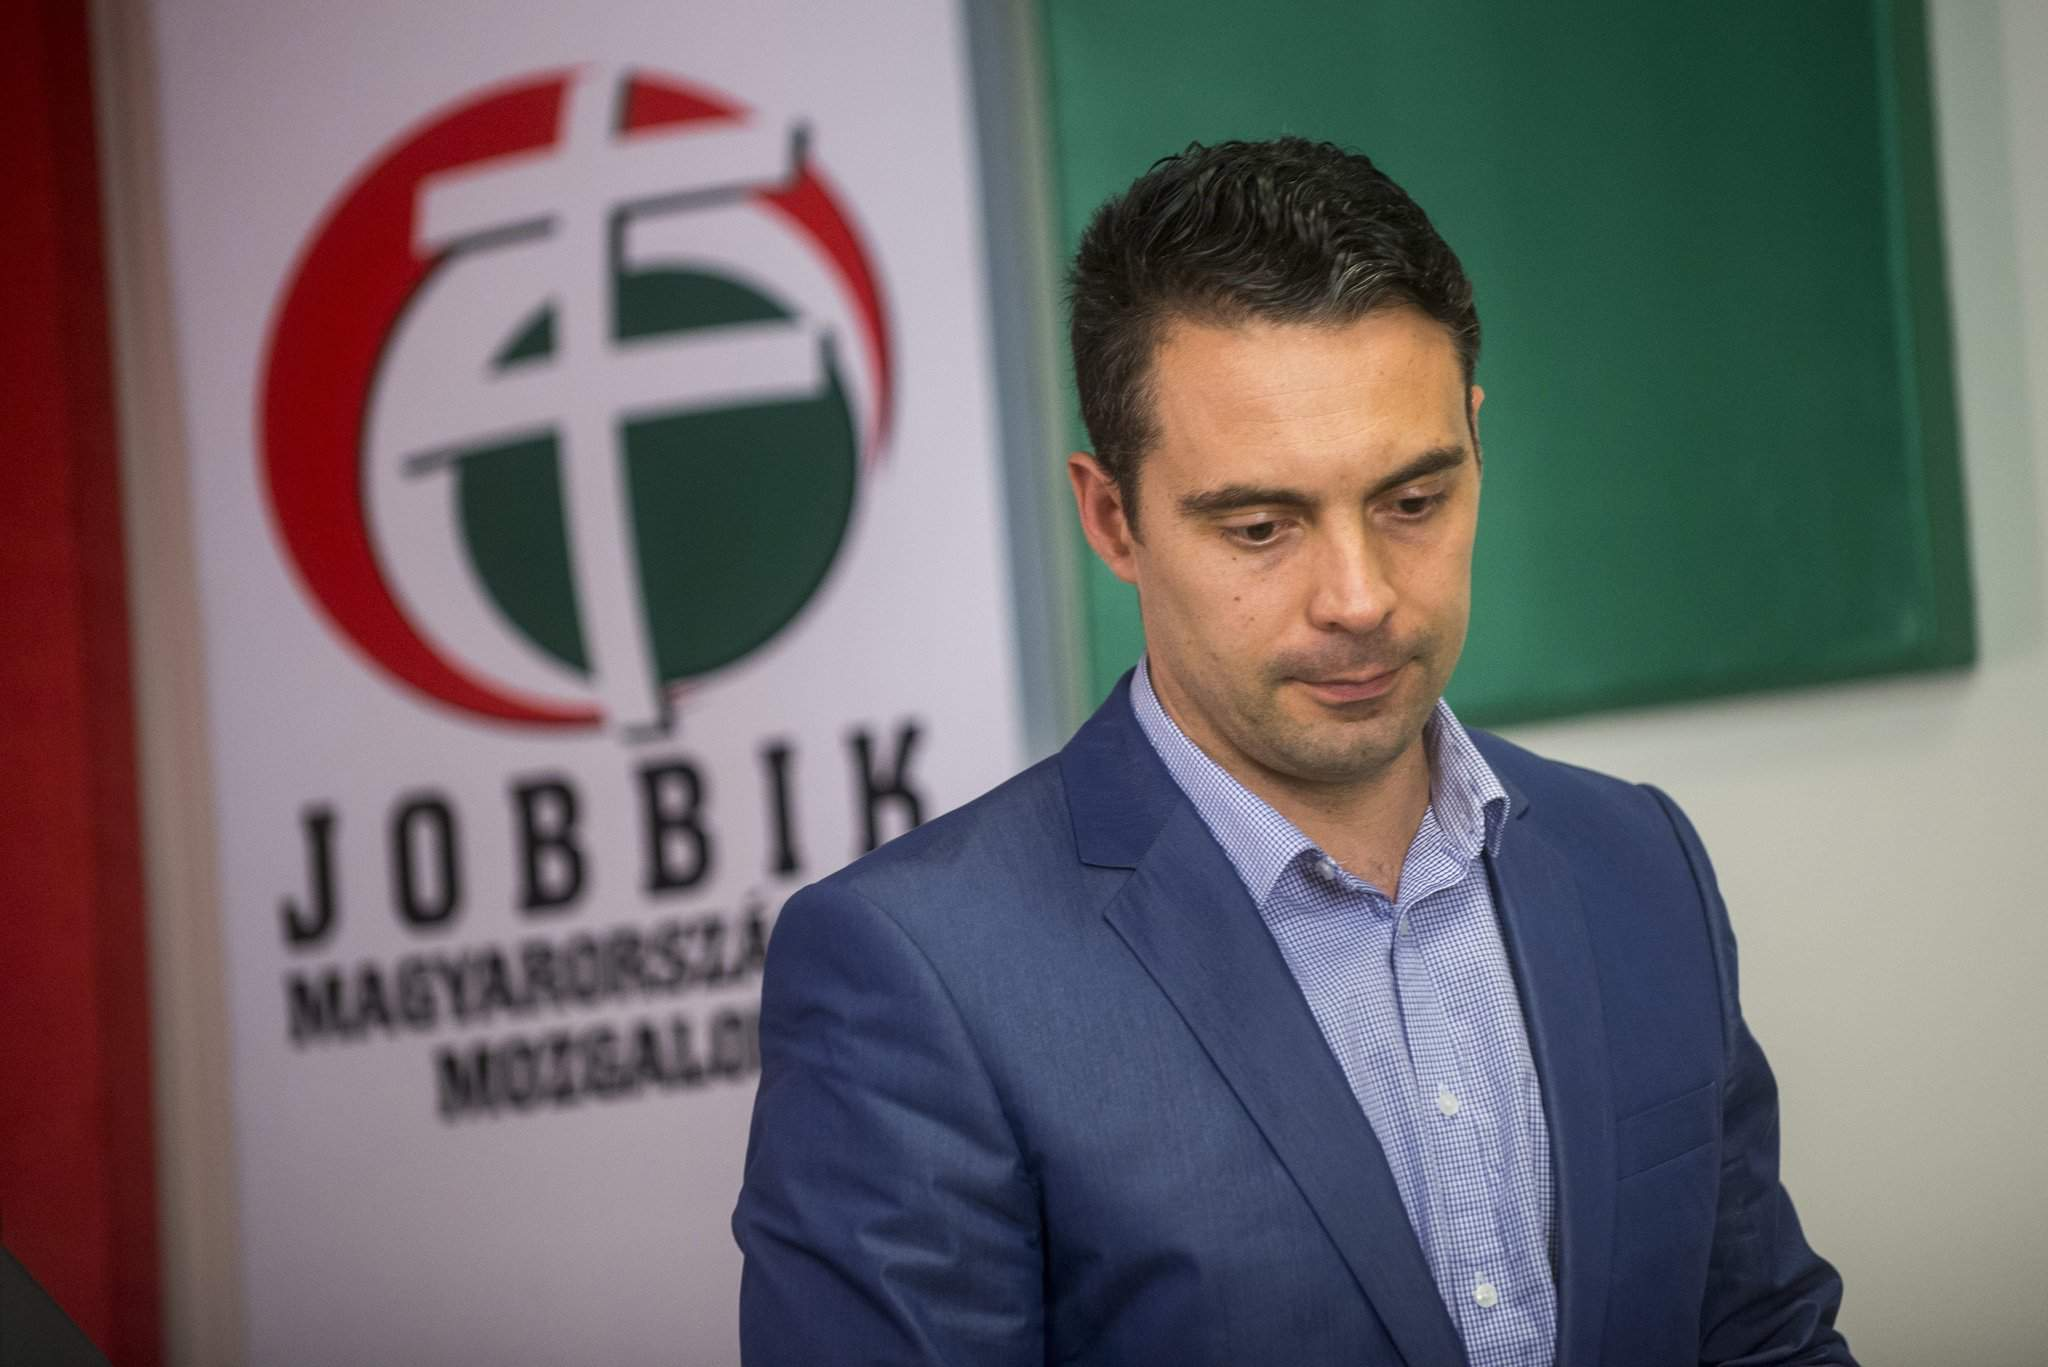 Vona seeks meeting with Orbán to discuss constitutional amendment vote